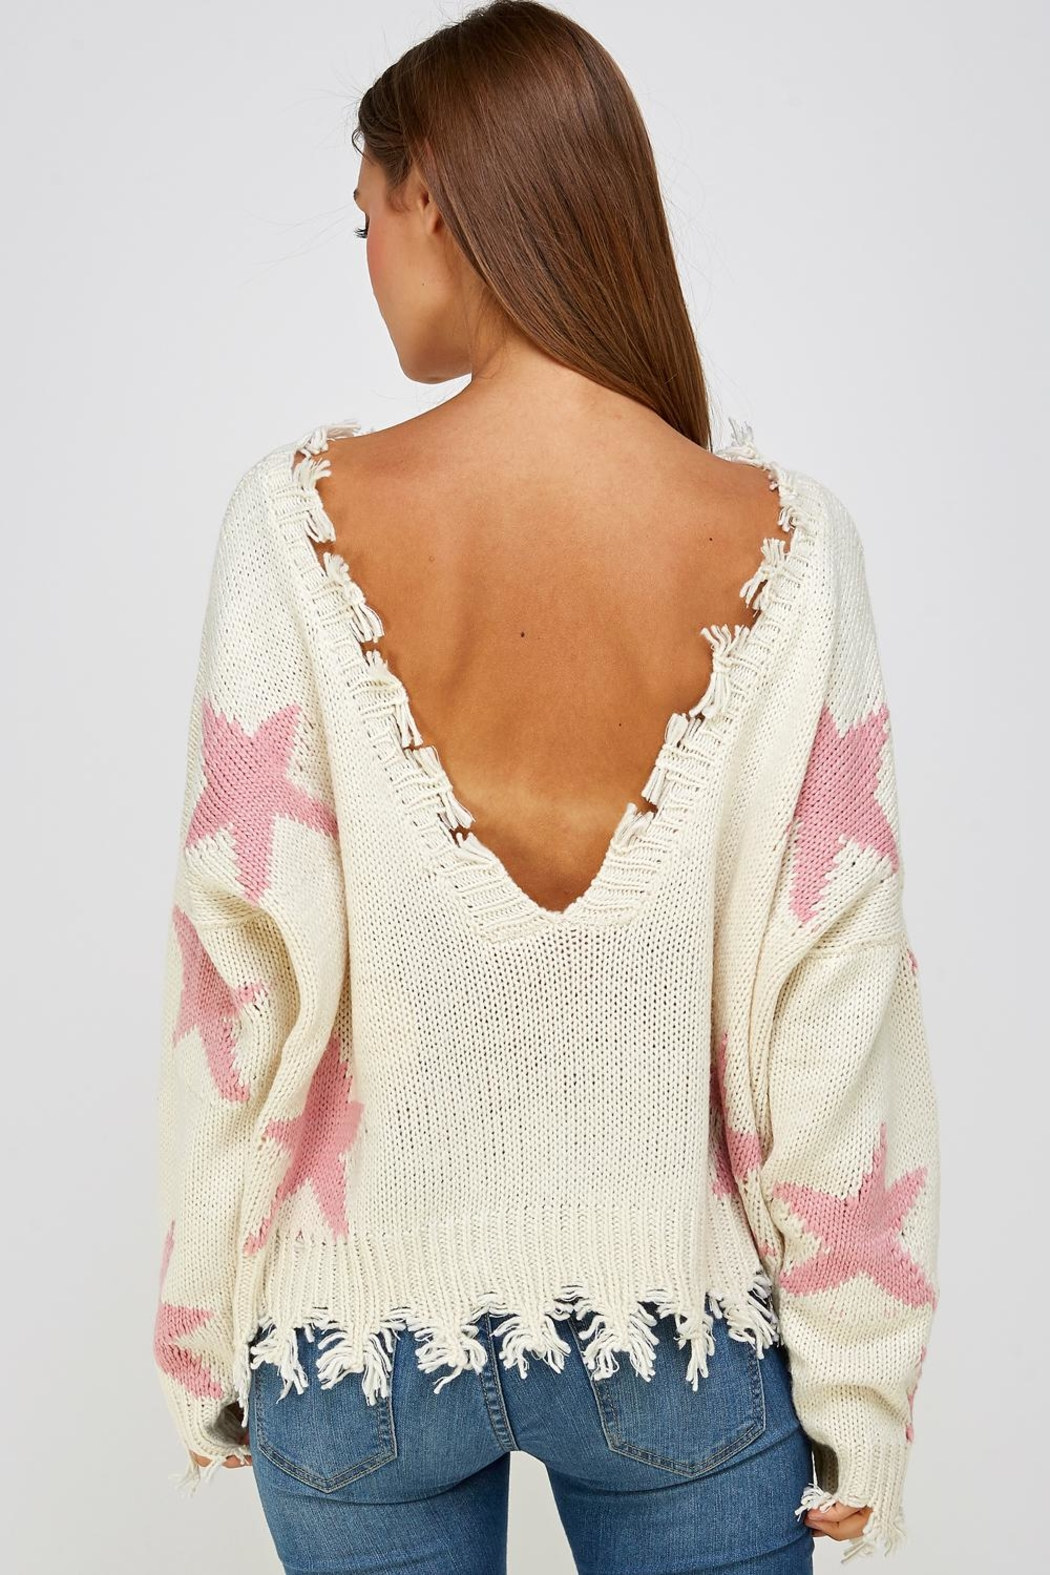 storia Distressed Star Sweater - Back Cropped Image